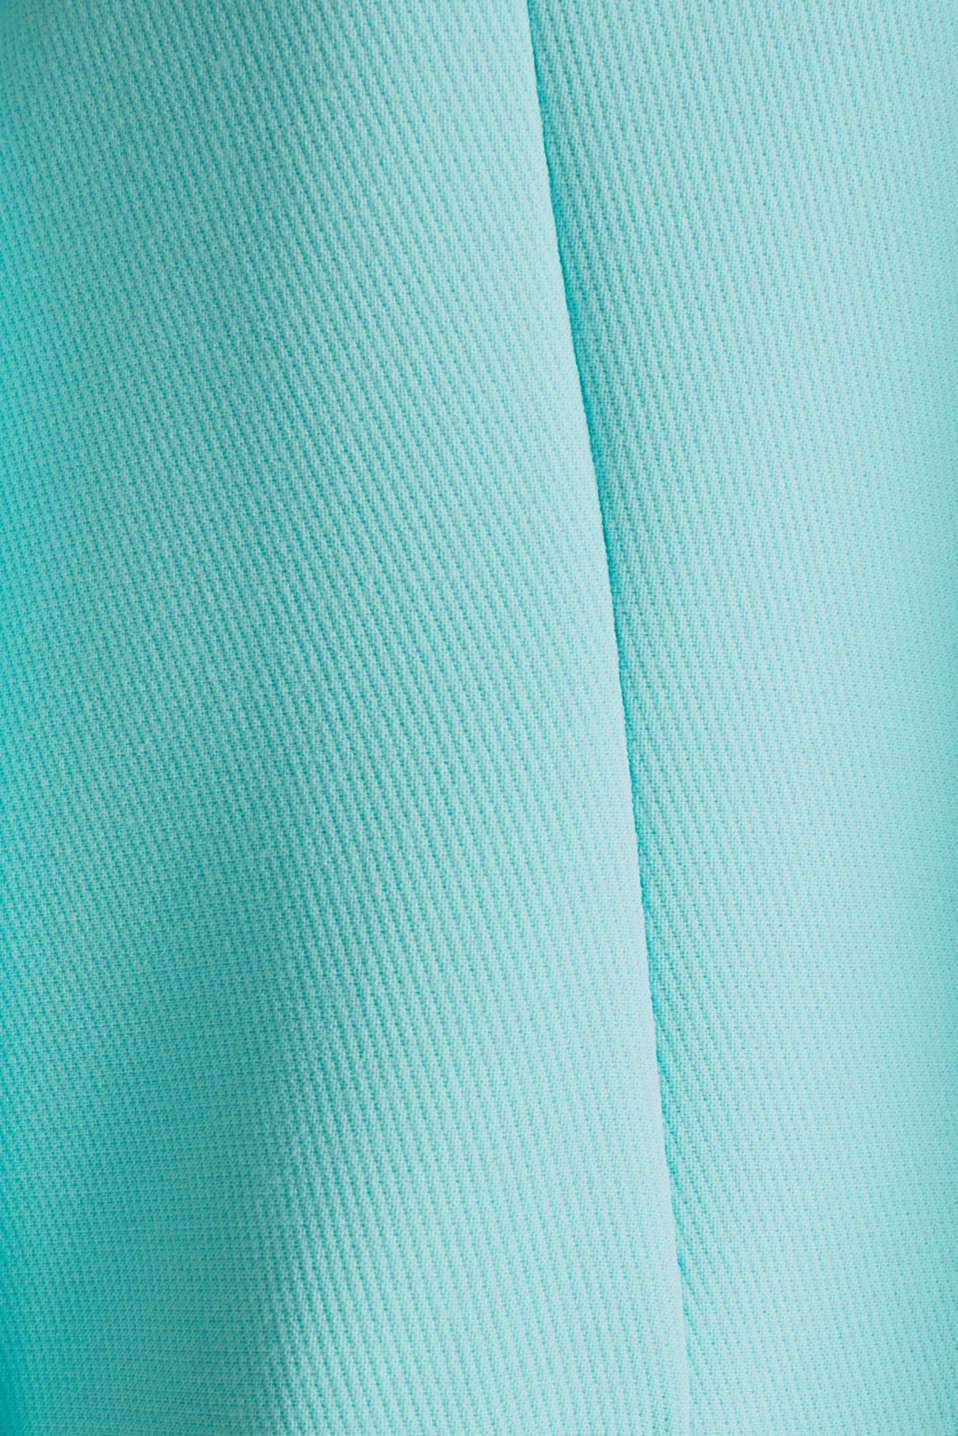 Blazer coat with a fine texture, LIGHT TURQUOISE, detail image number 4